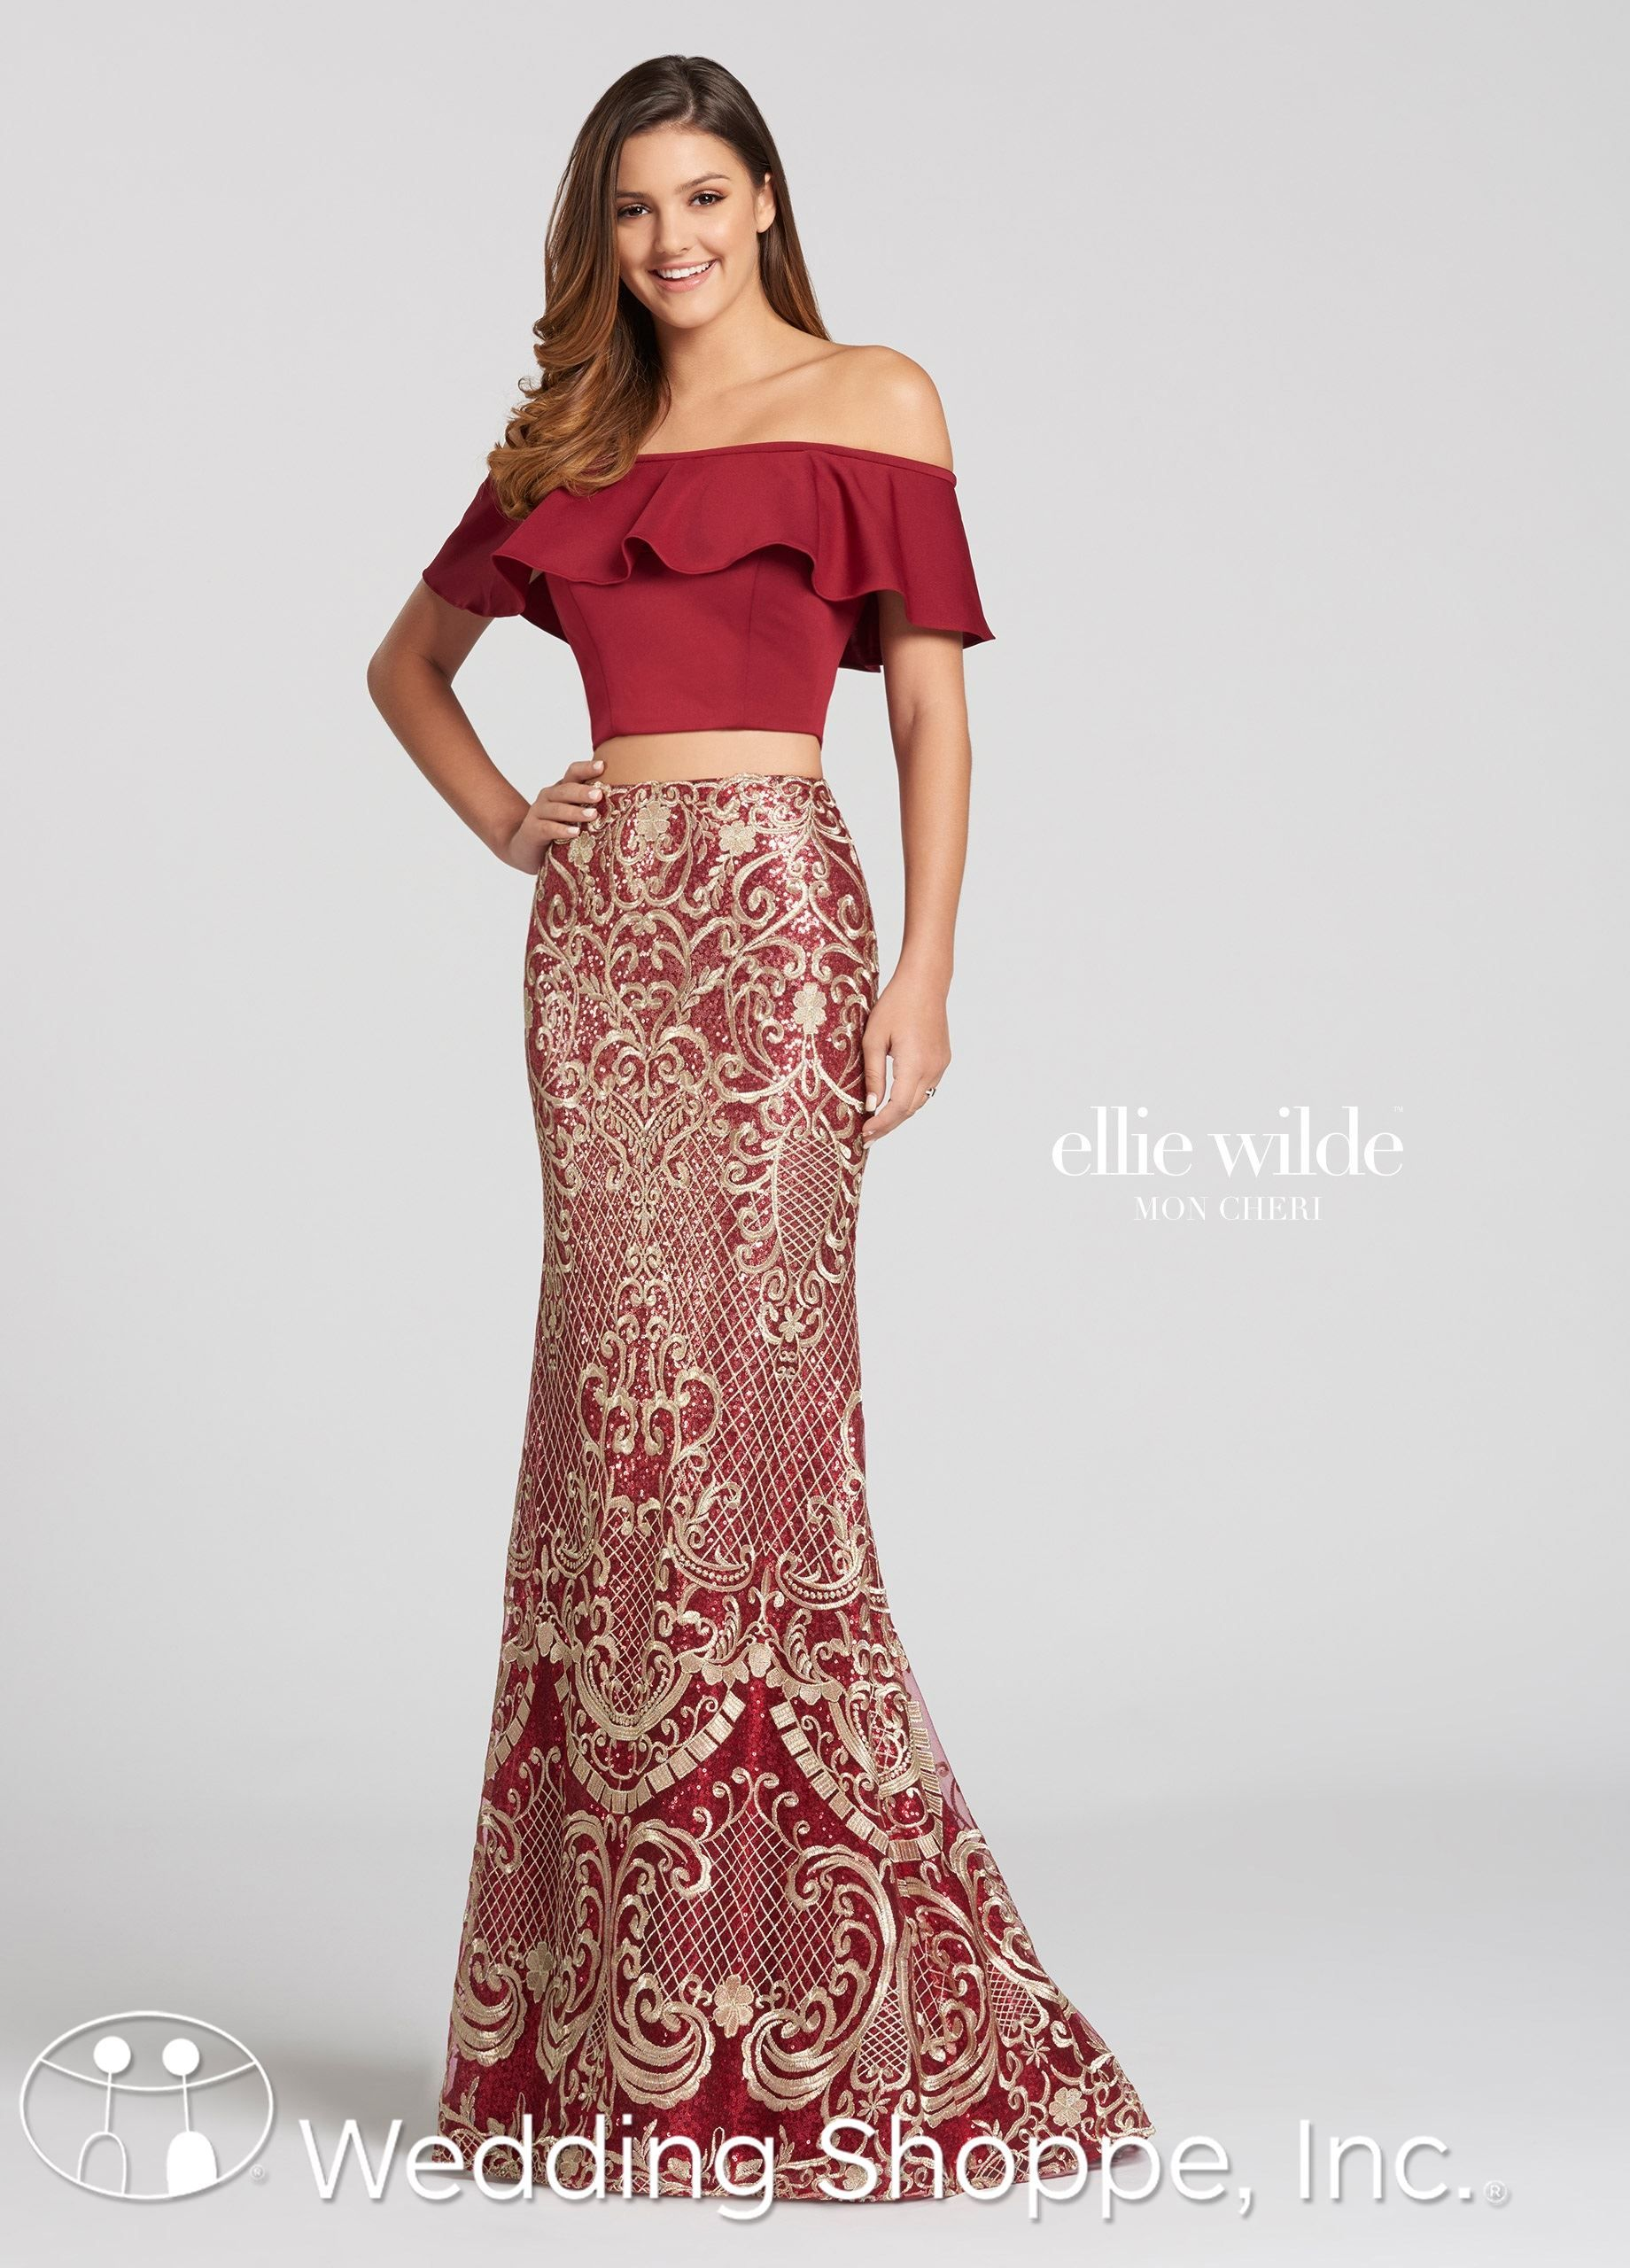 633f1037d263f7 A beautiful and unique two piece sheath prom dress with an off the shoulder  top and high waisted patterned skirt. Available in wine gold